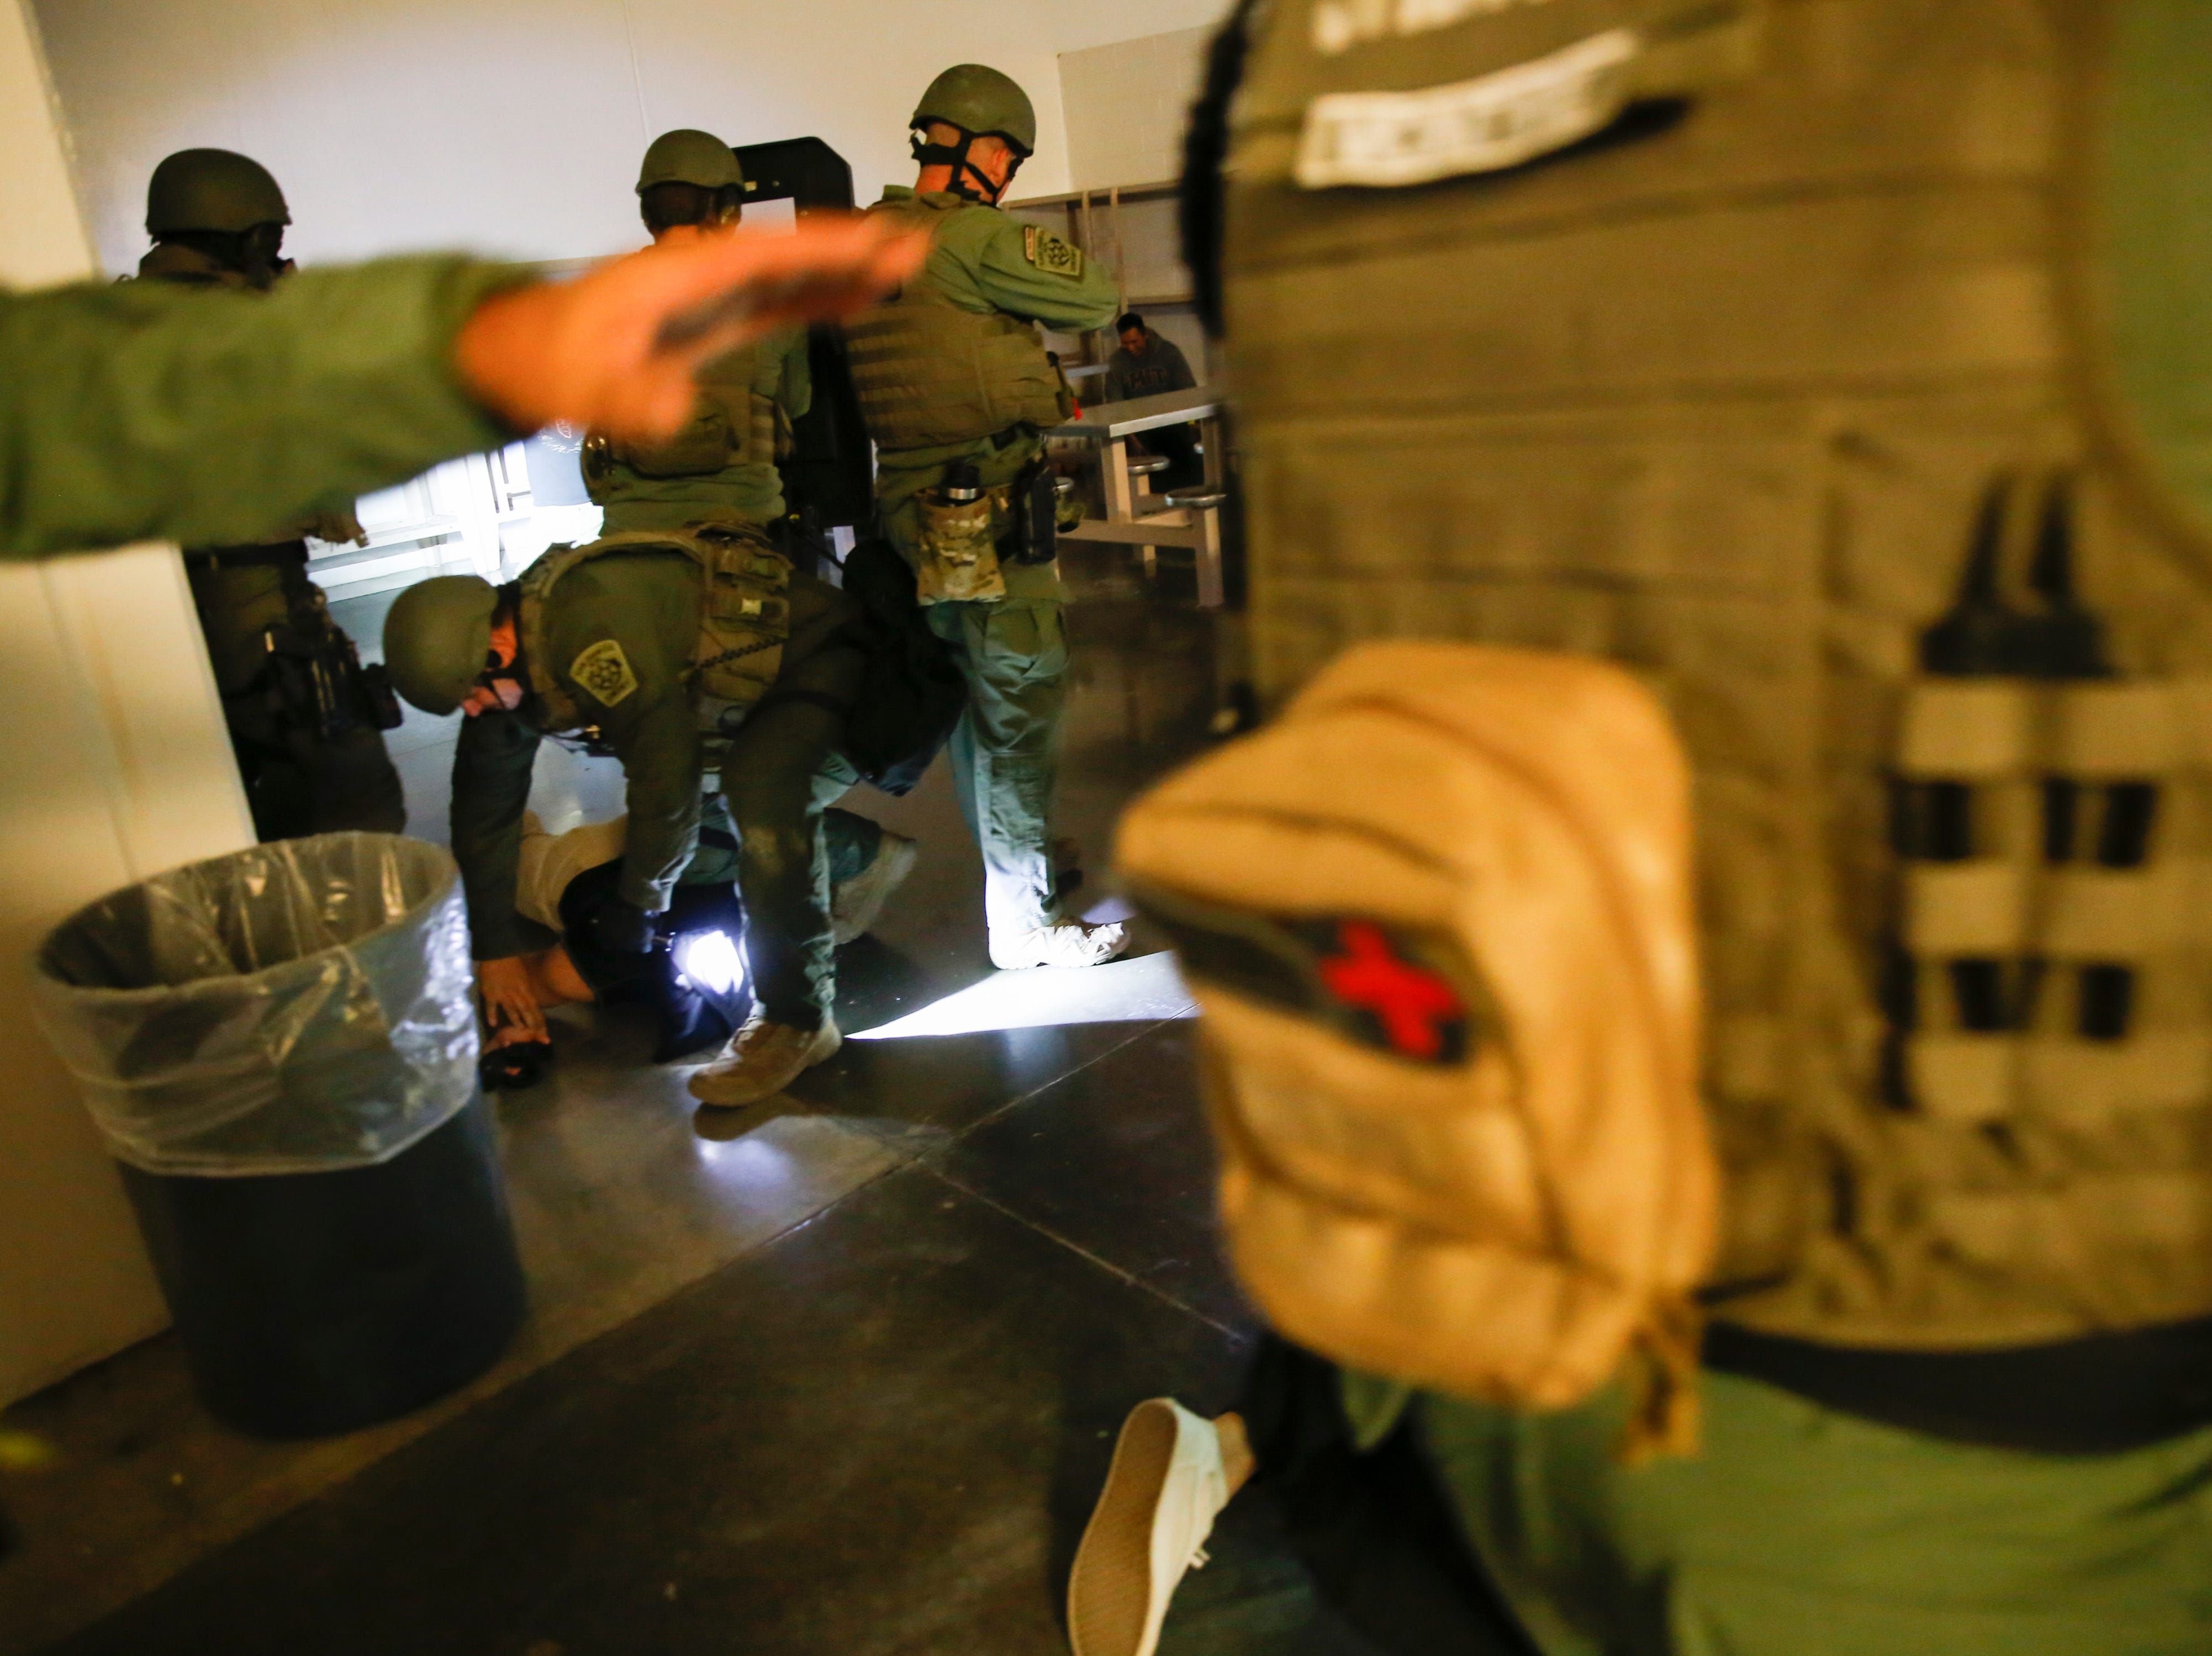 Members of the San Juan County Sheriff's Office SWAT team attempt to gain control a simulated riot, Wednesday, Sept. 12, 2018 inside the San Juan County Detention Center in Farmington.